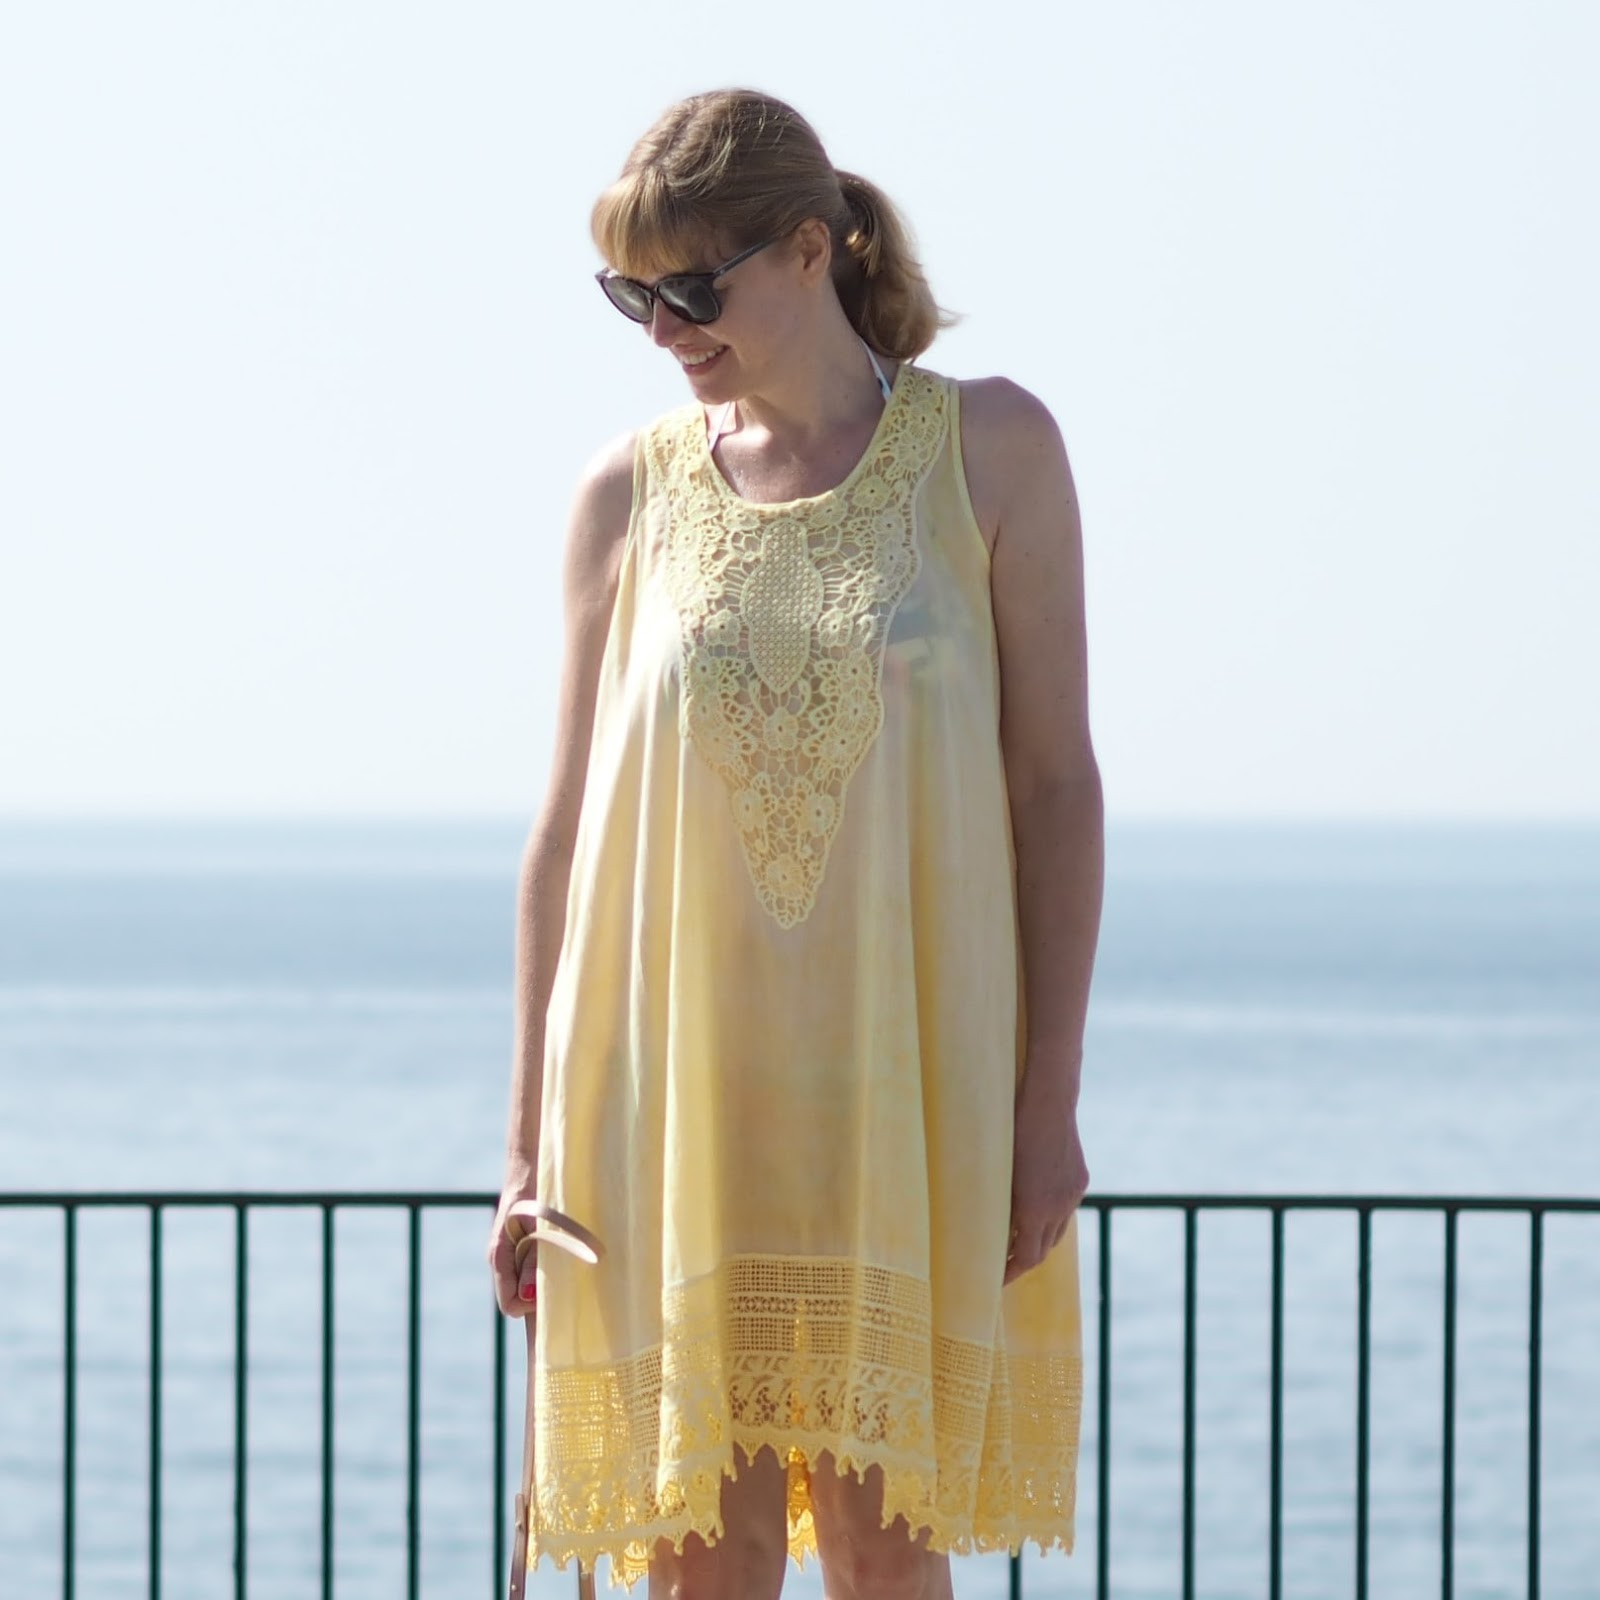 Floral bikini and yellow lace beach cover-up dress, El Balcon de Europa, Nerja